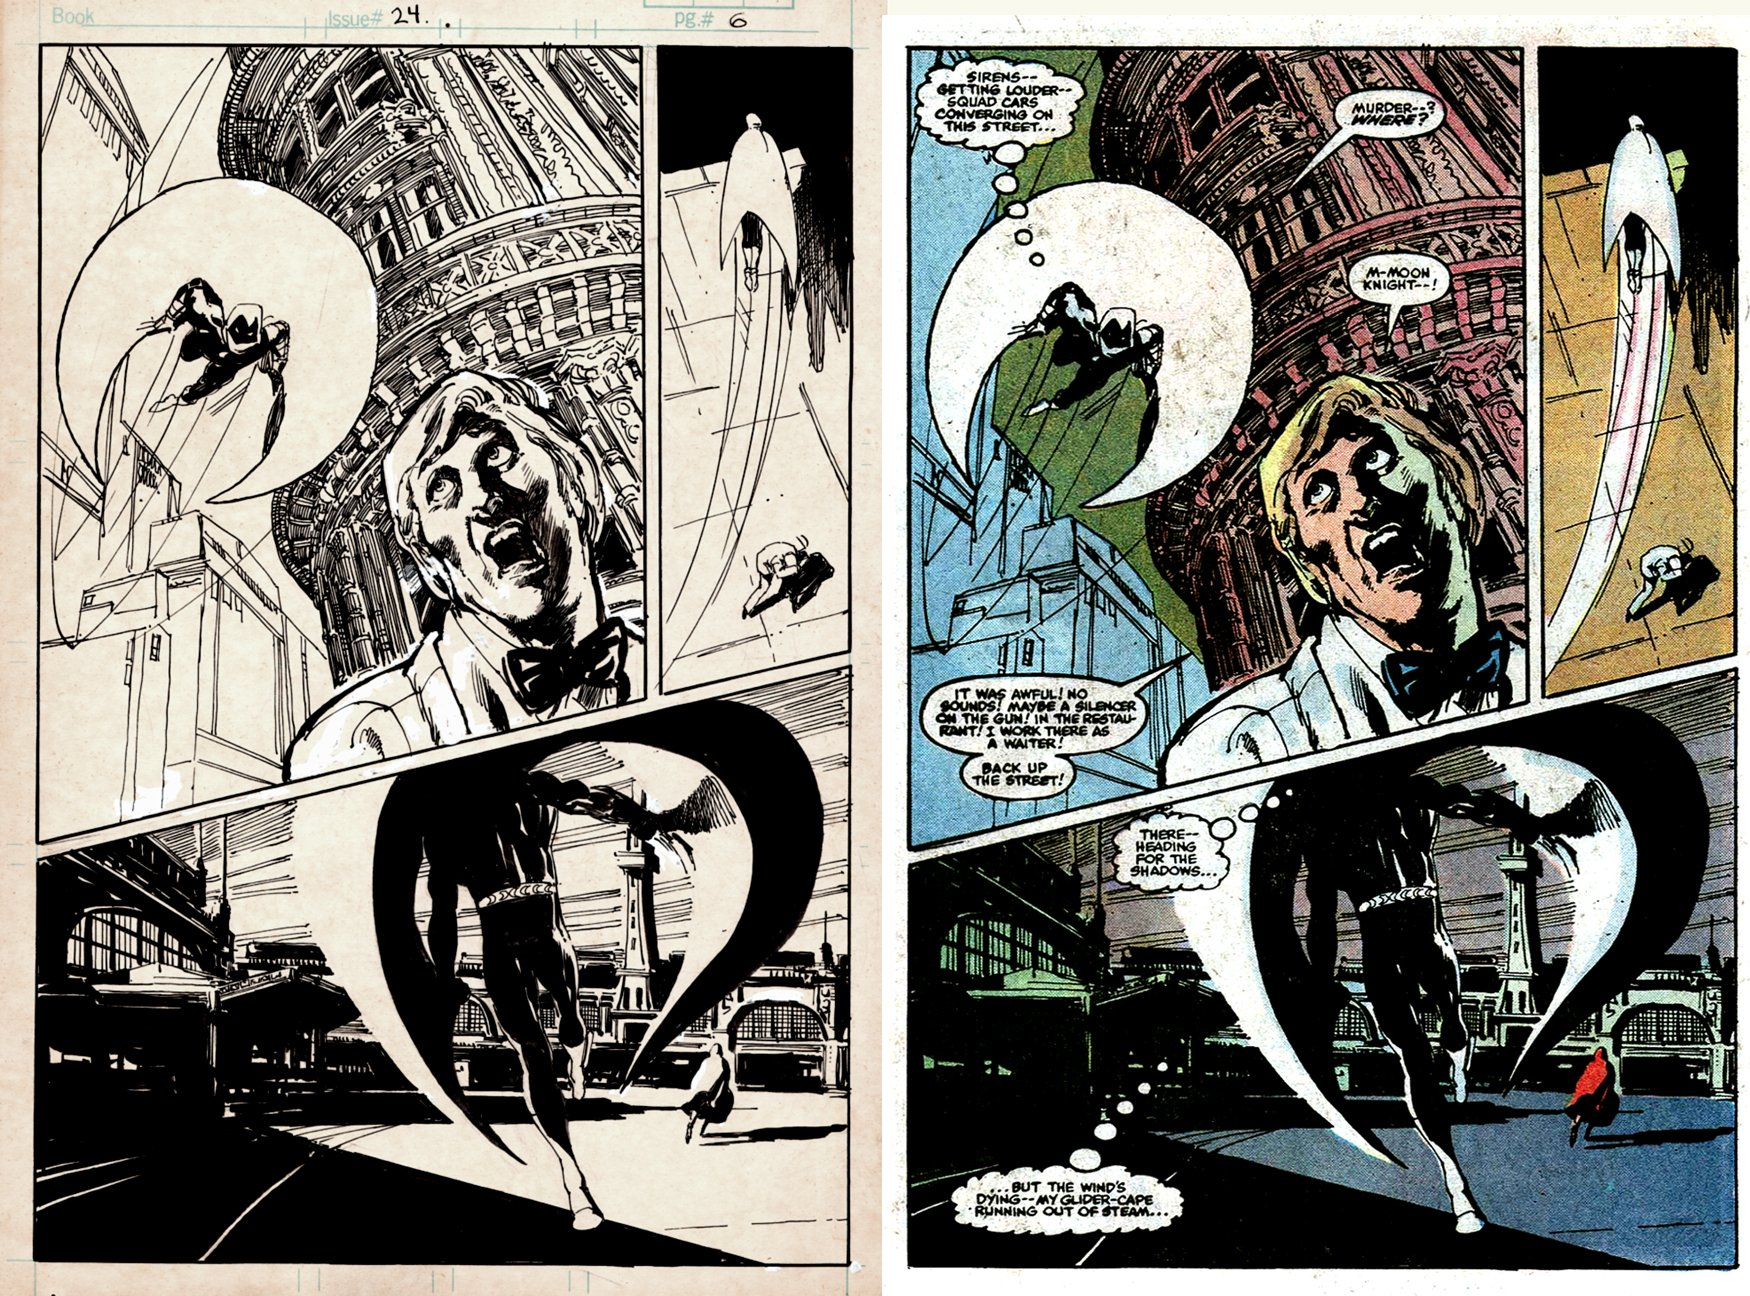 Moon knight #24 p 6 SPLASH (SOLD LIVE ON 'DUELING DEALERS OF COMIC ART' EPISODE #15 PODCAST ON 5-1-2021 (RE-WATCH OUR LIVE ART SELLING PODCAST HERE)